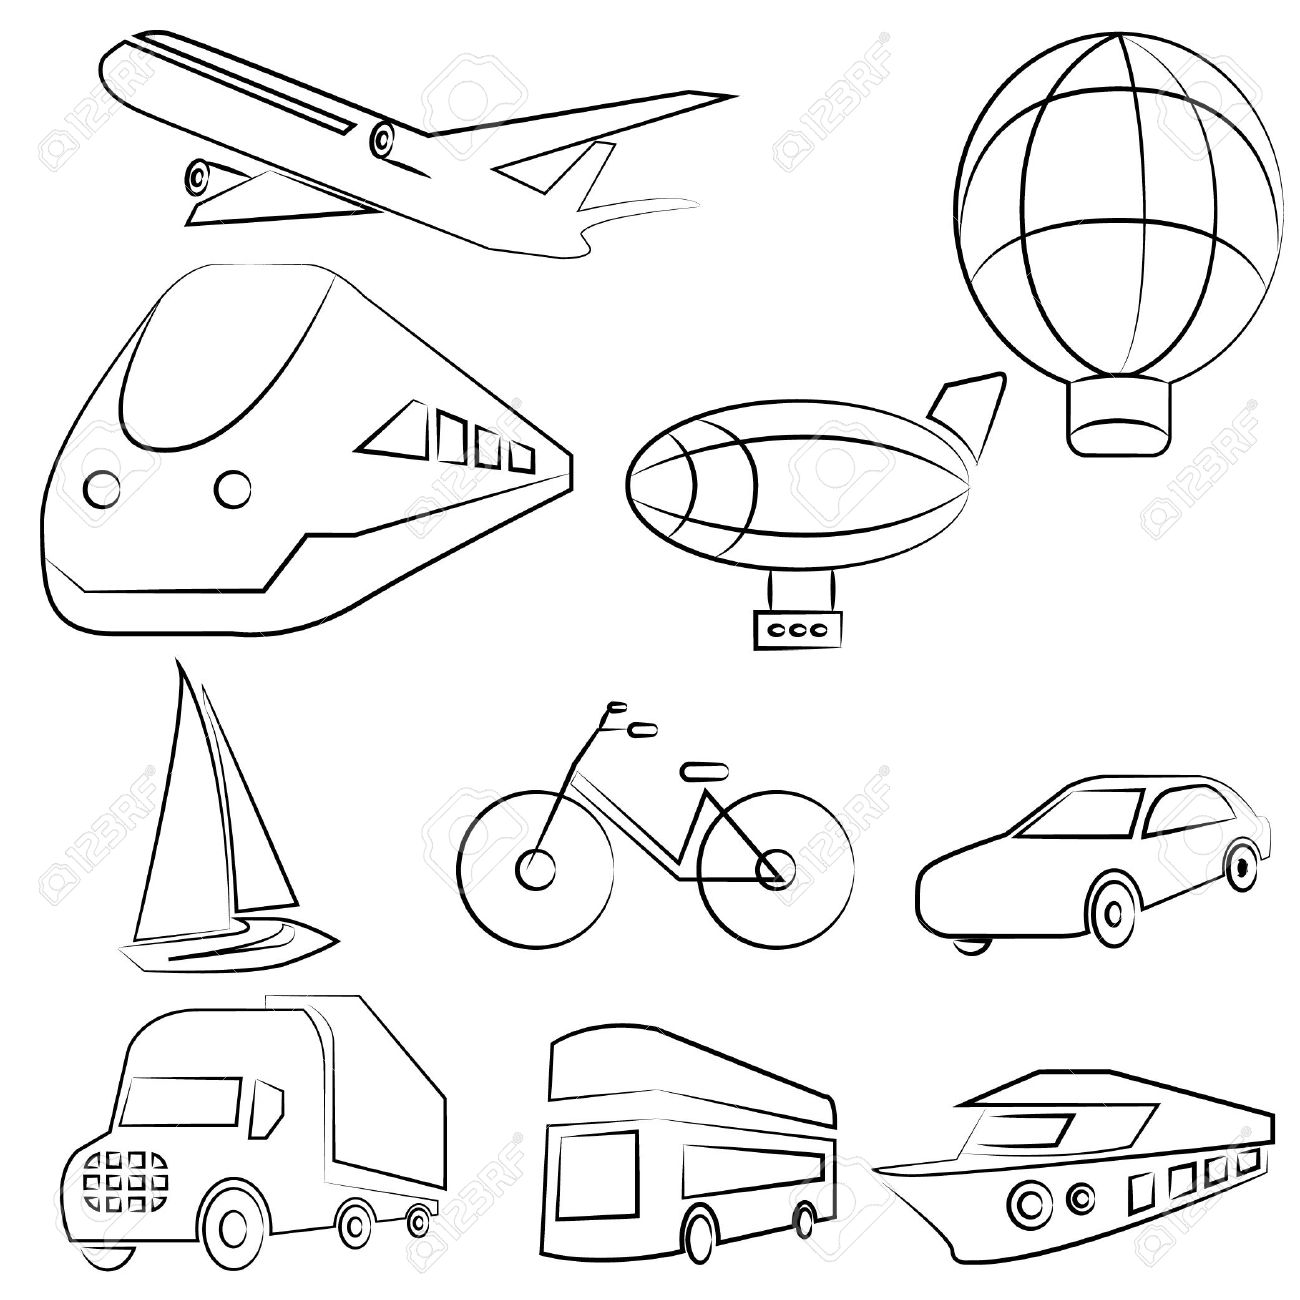 Transport Drawing At Getdrawings